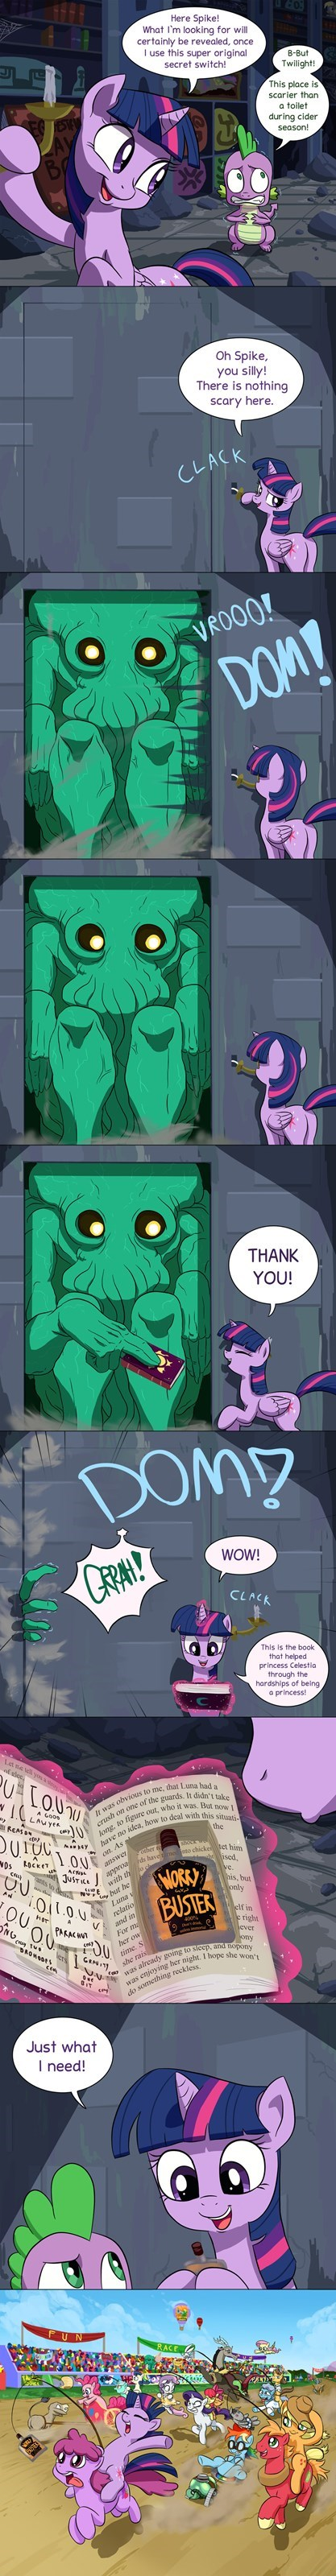 race,twilight sparkle,berry punch,cthulhu